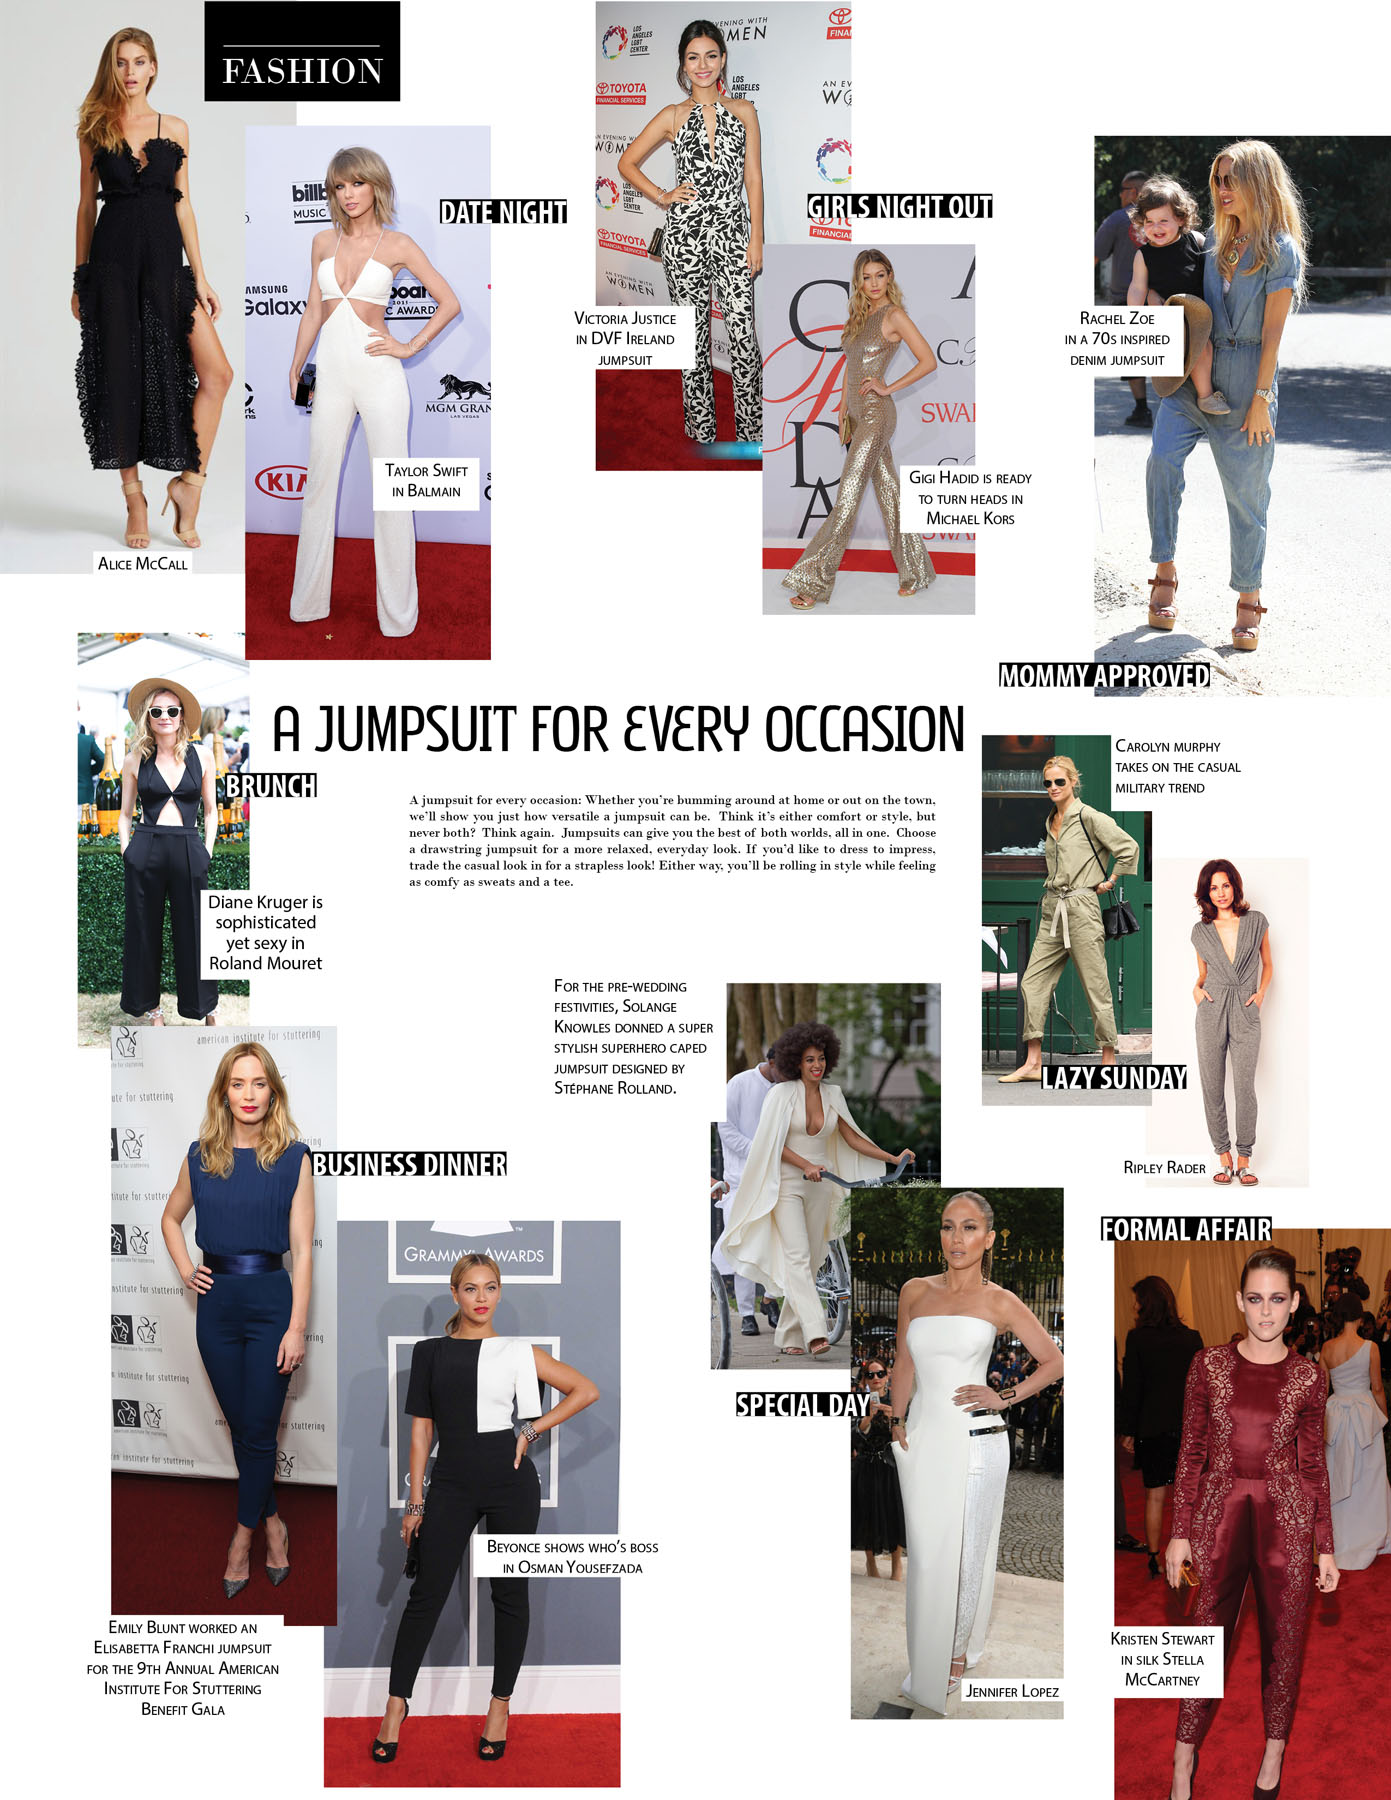 A JUMPSUIT FOR EVERY OCCASION